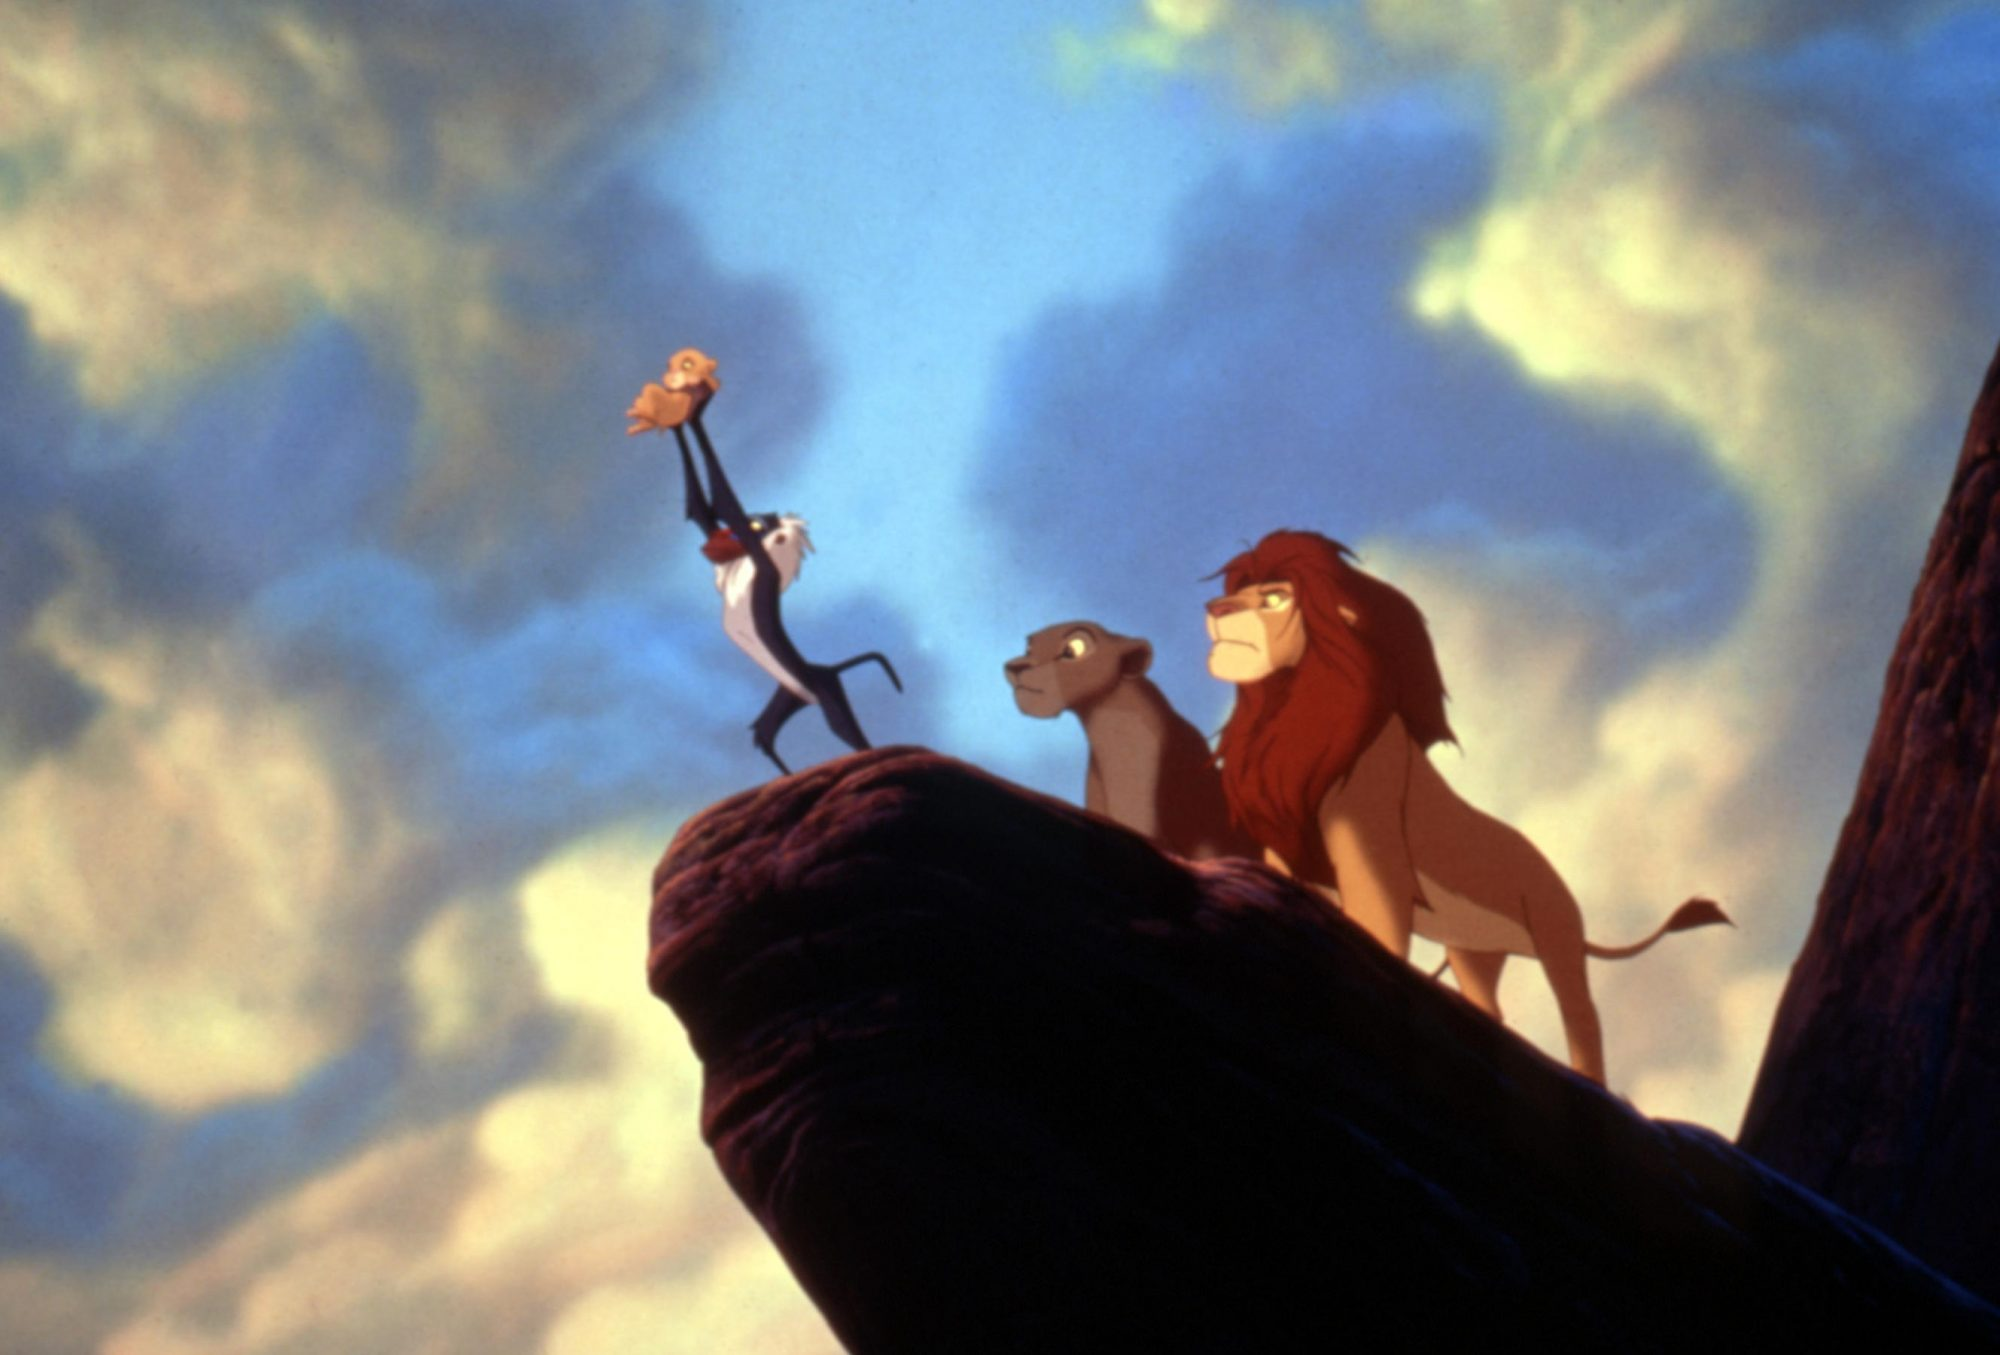 THE LION KING, Simba, Rafiki, Sarabi, Mufasa, 1994, (c)Buena Vista Pictures/courtesy Everett Collect